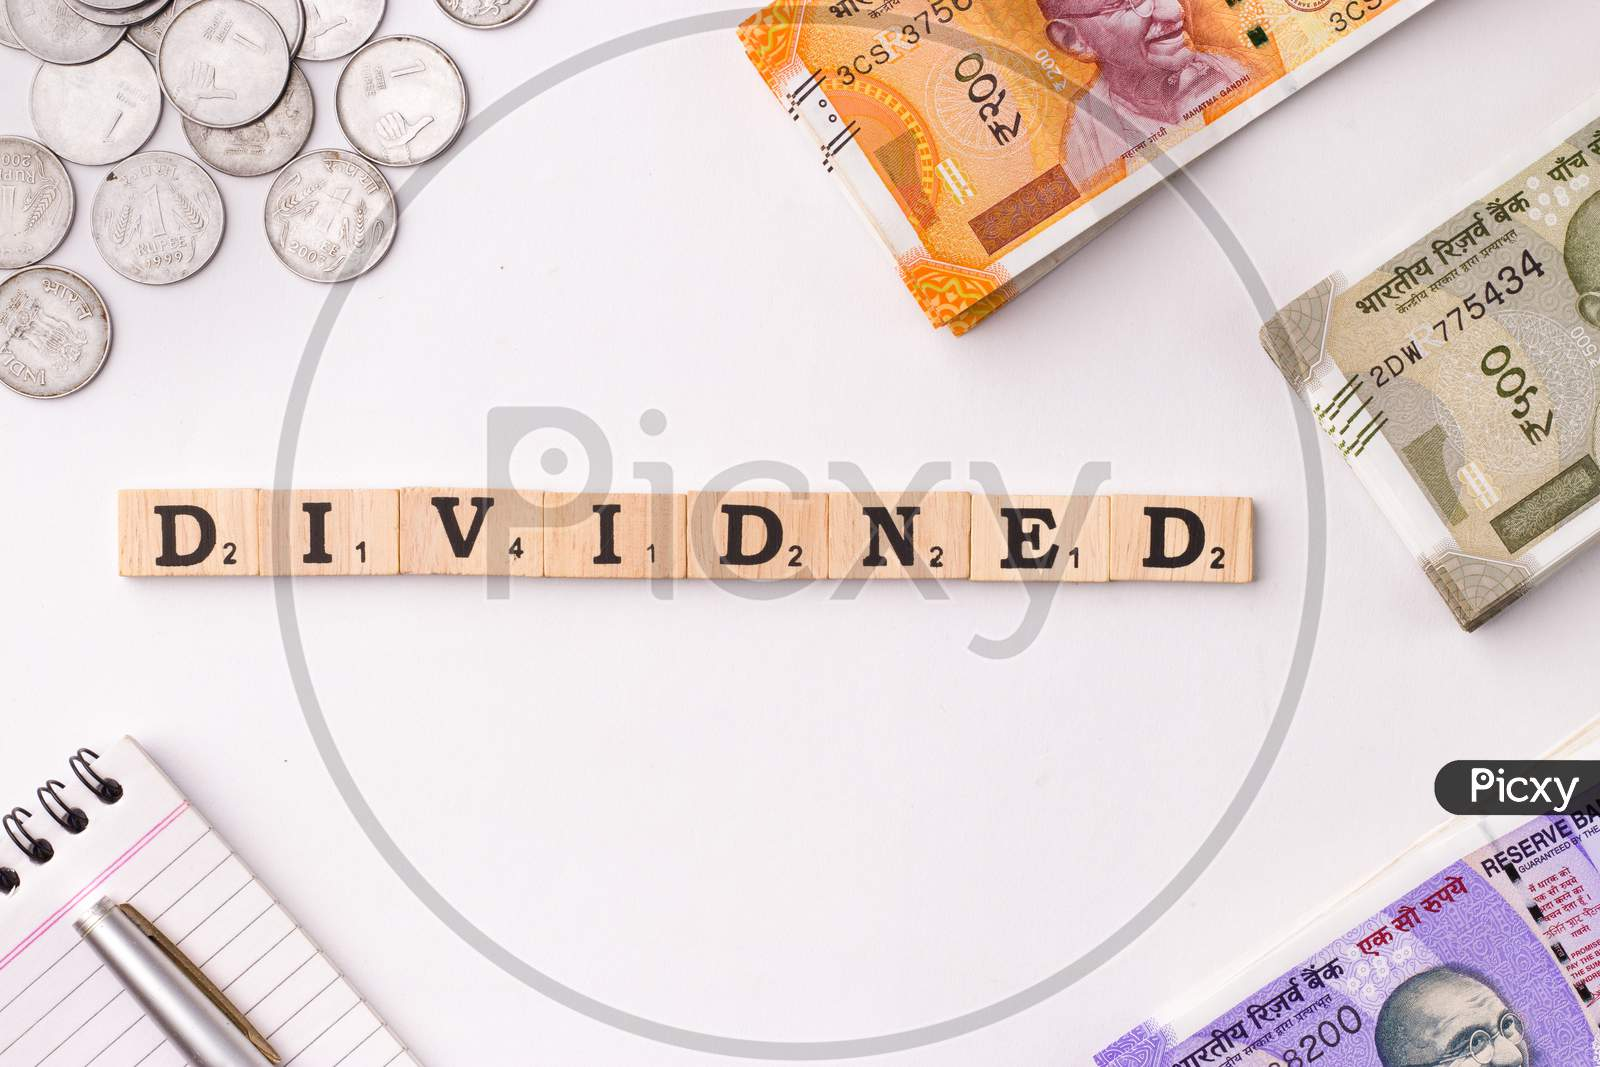 Assam, india - March 30, 2021 : Word DIVIDEND written on wooden cubes stock image.